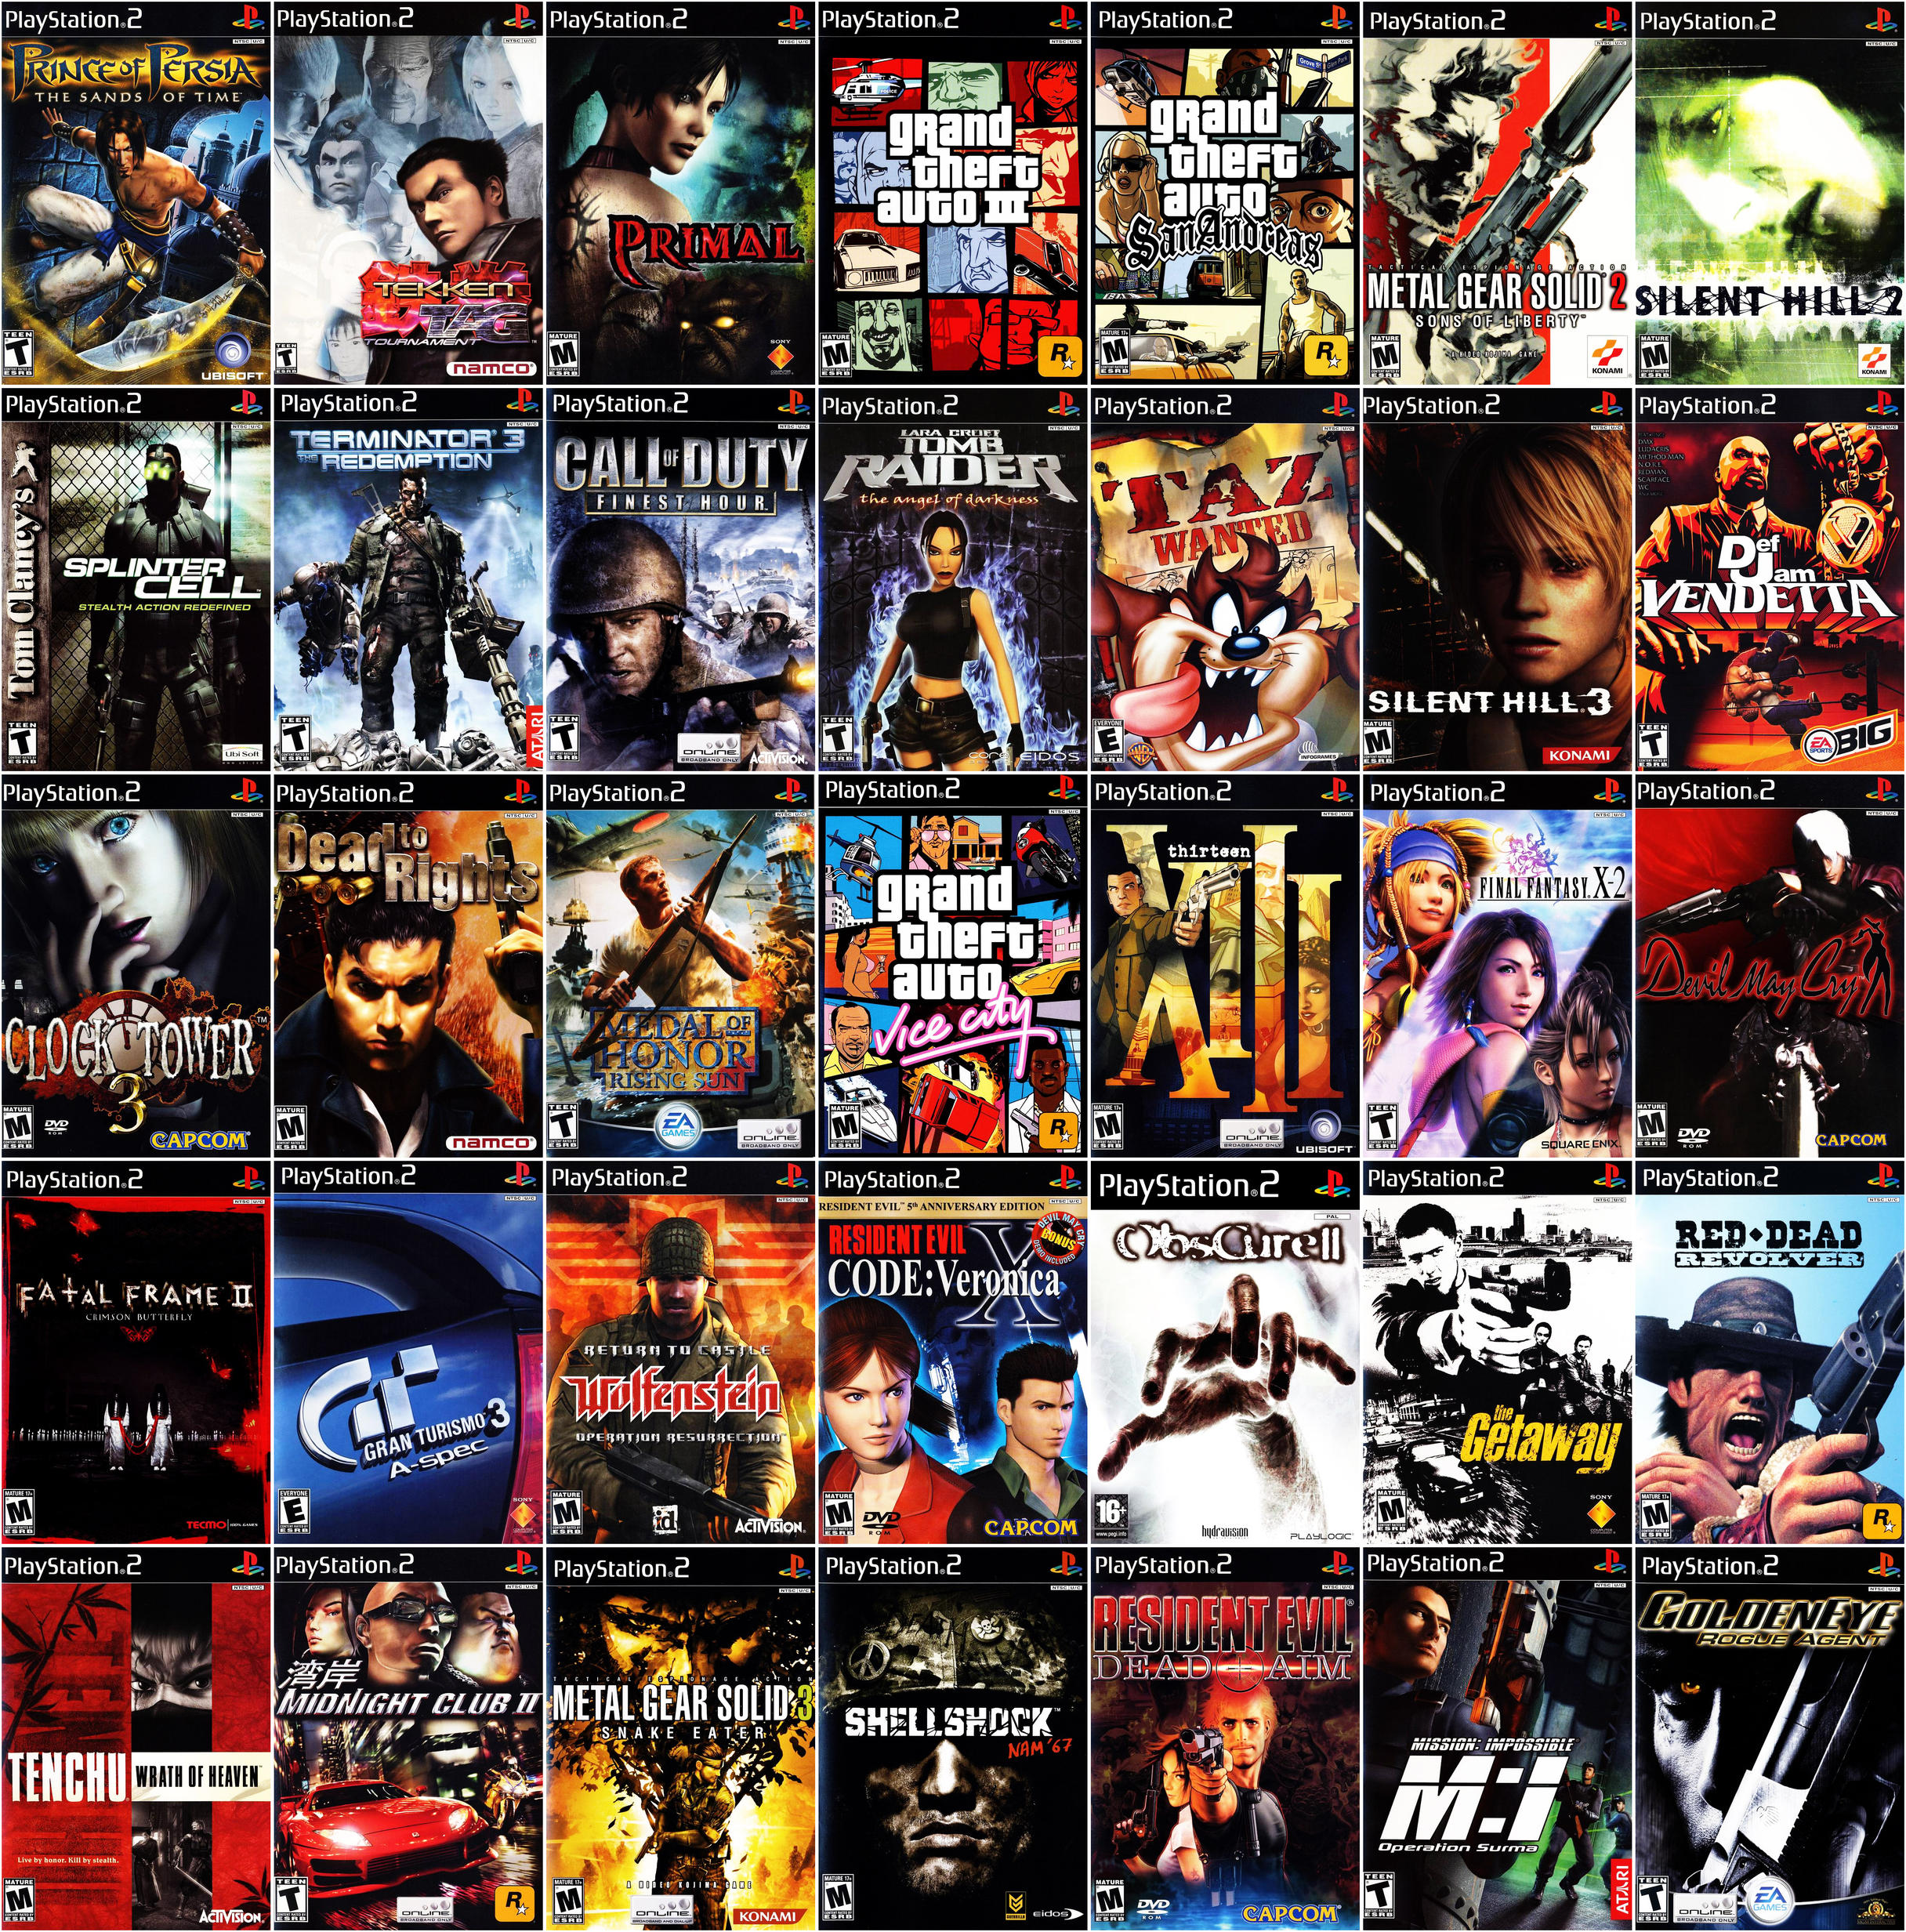 The best PS3 games of all time | GamesRadar+